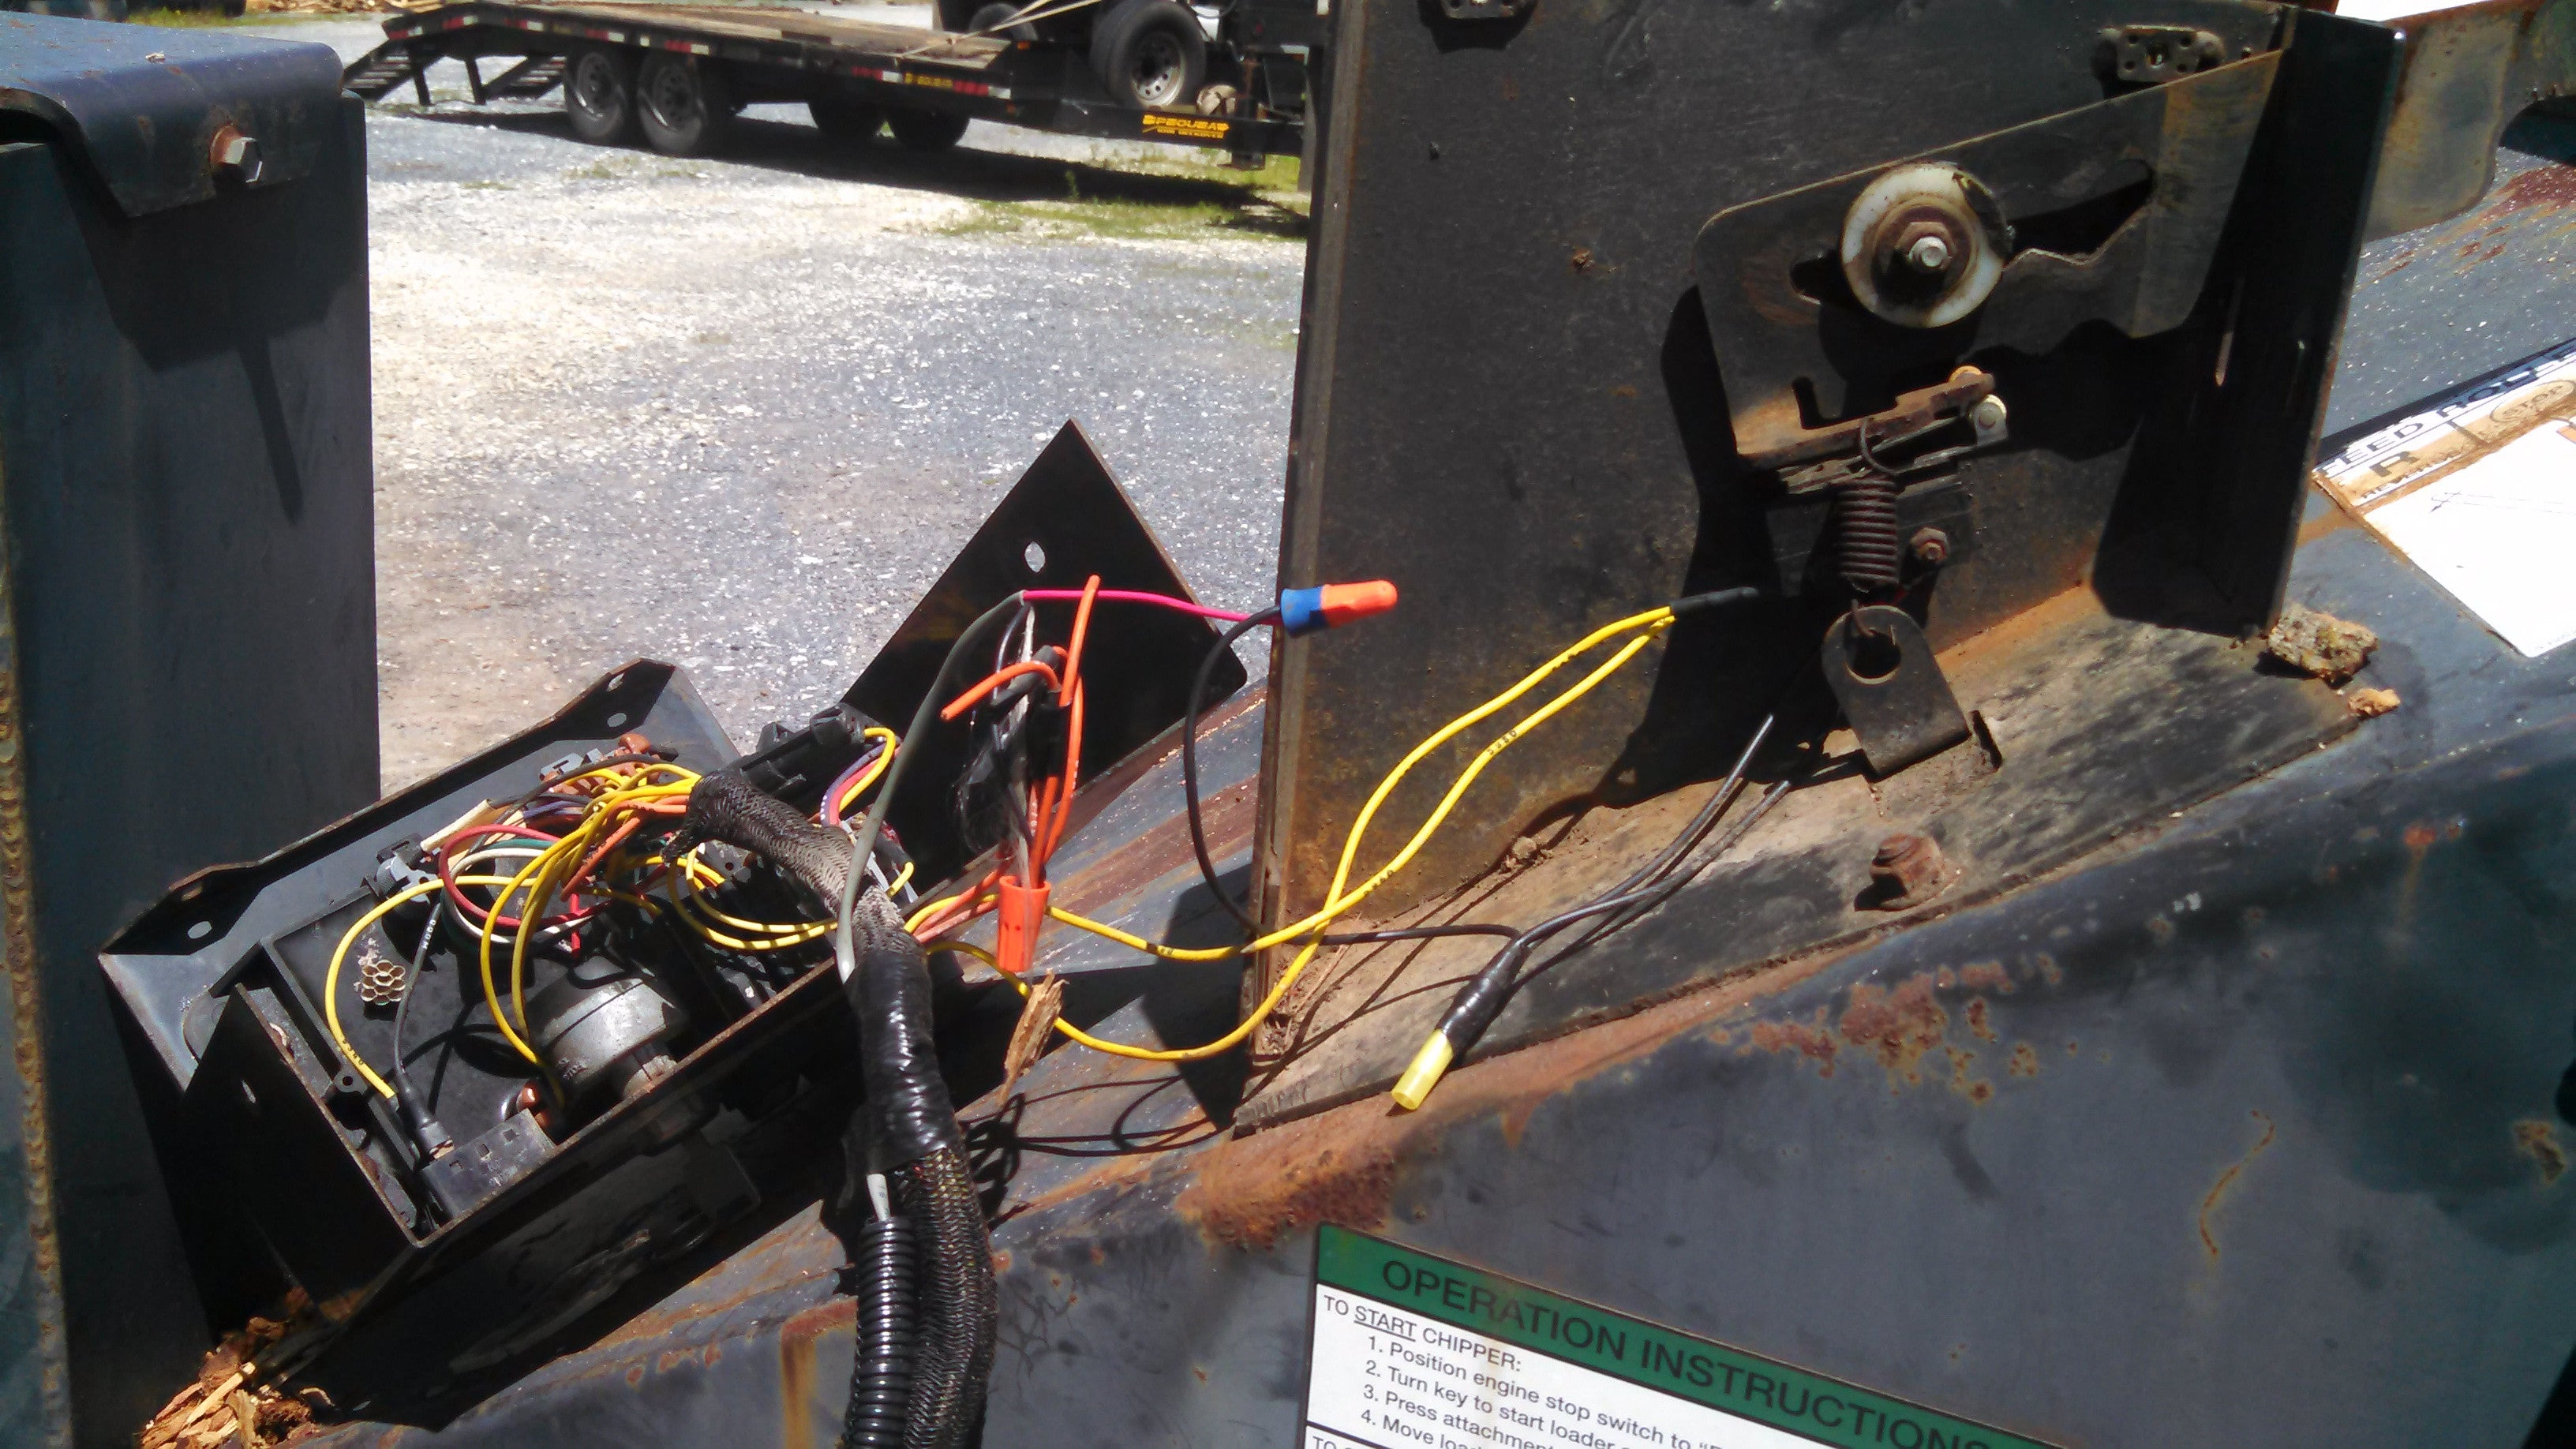 ... Bobcat RACS system with additional wiring